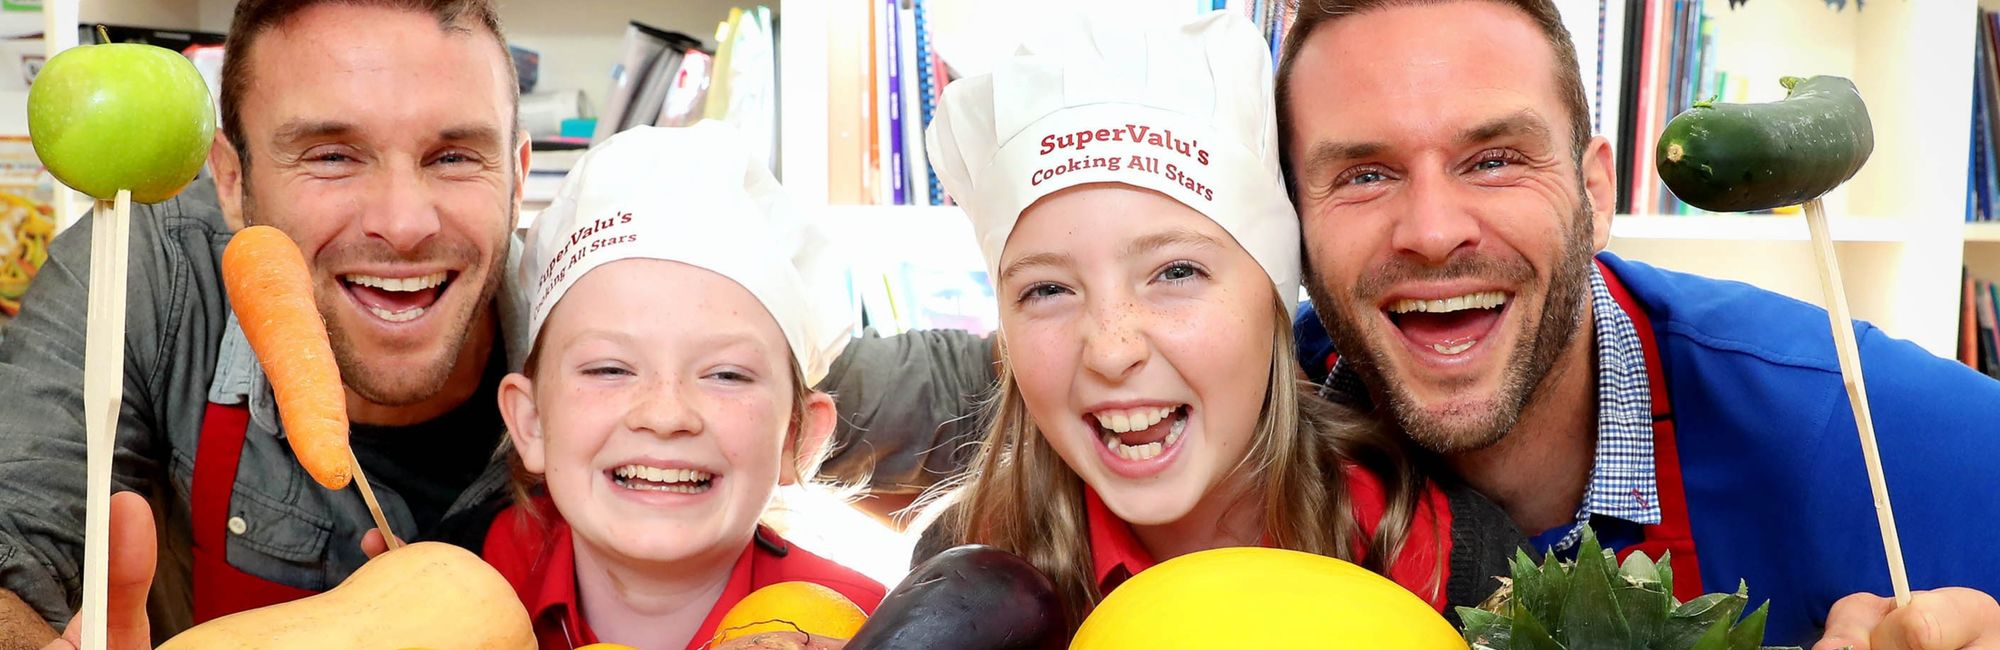 Supervalu cooking all stars kids cooking 2018